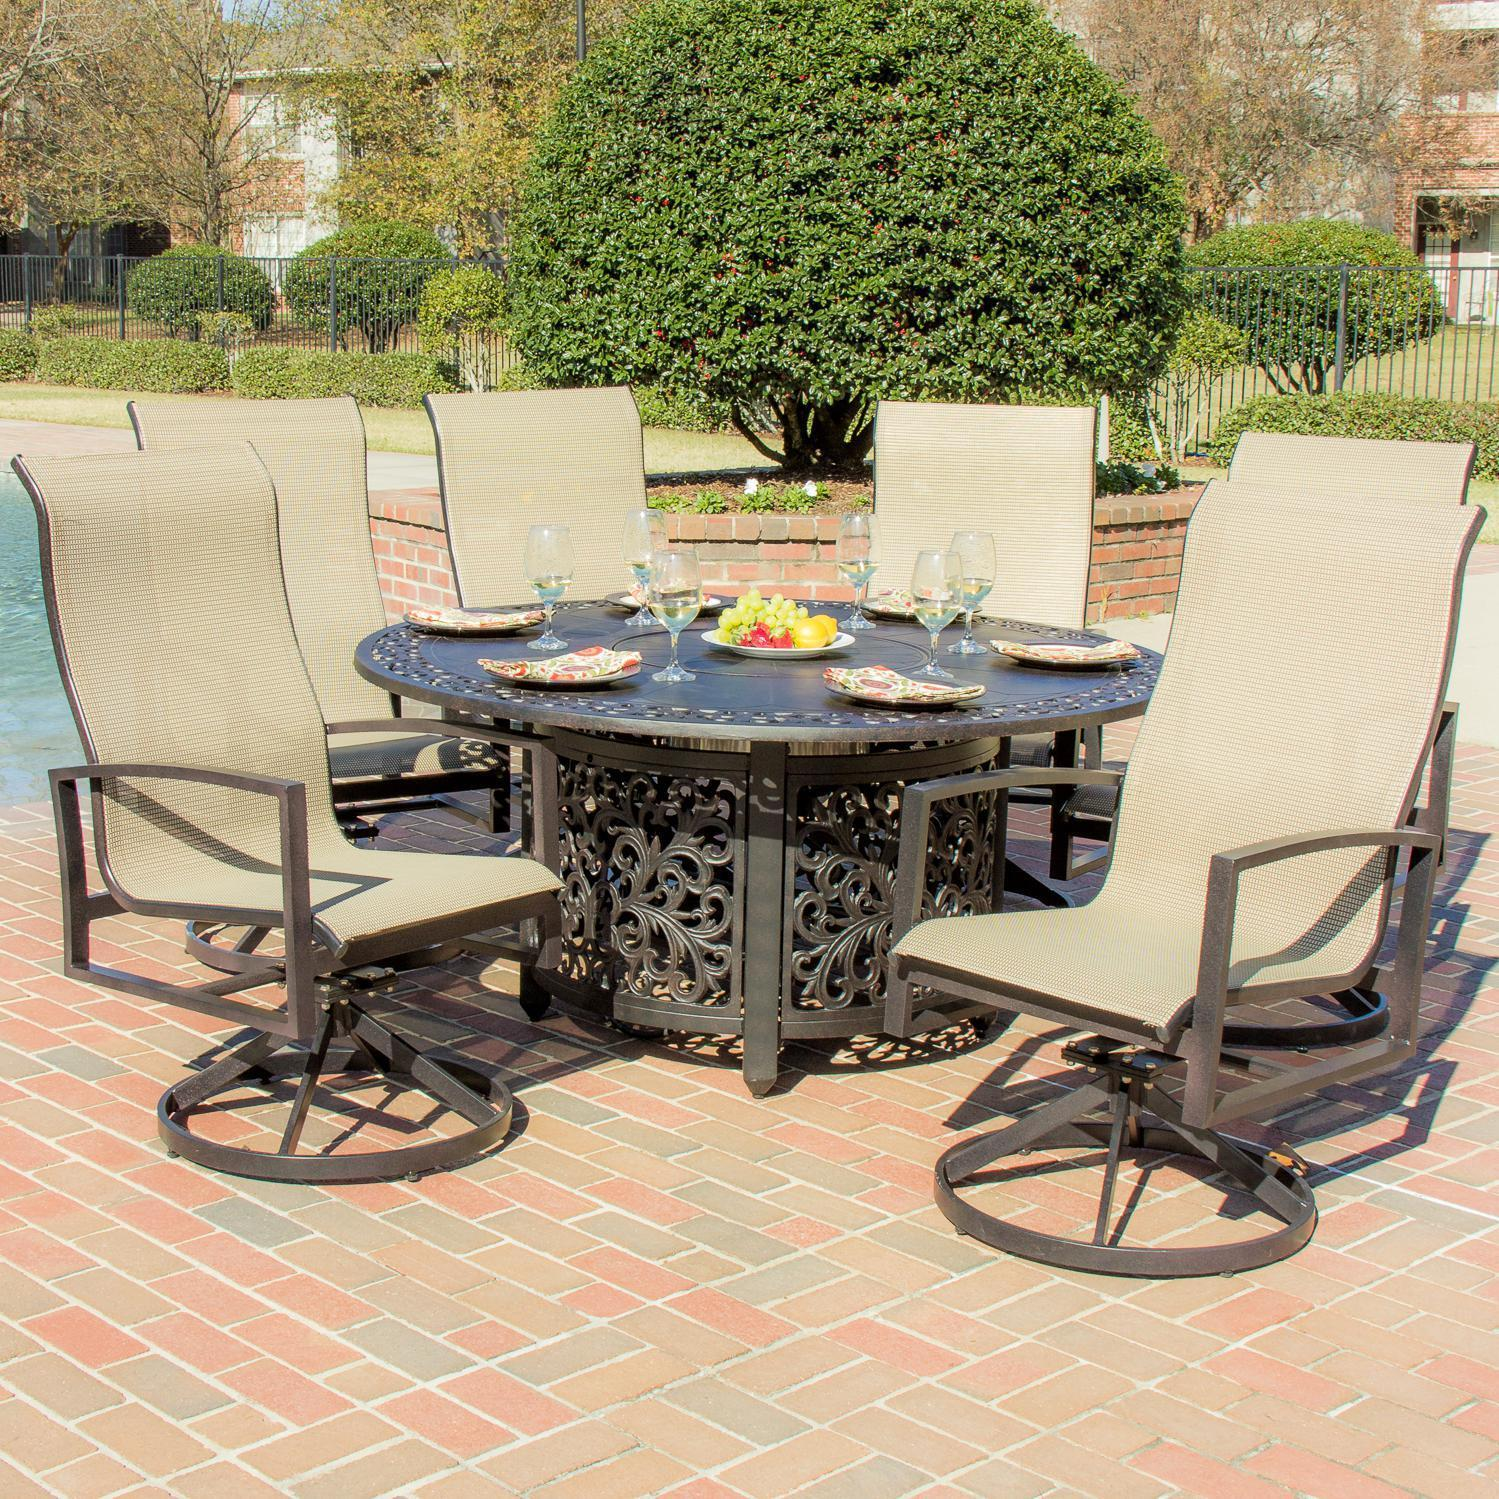 View Patio Set With Fire Pit PNG